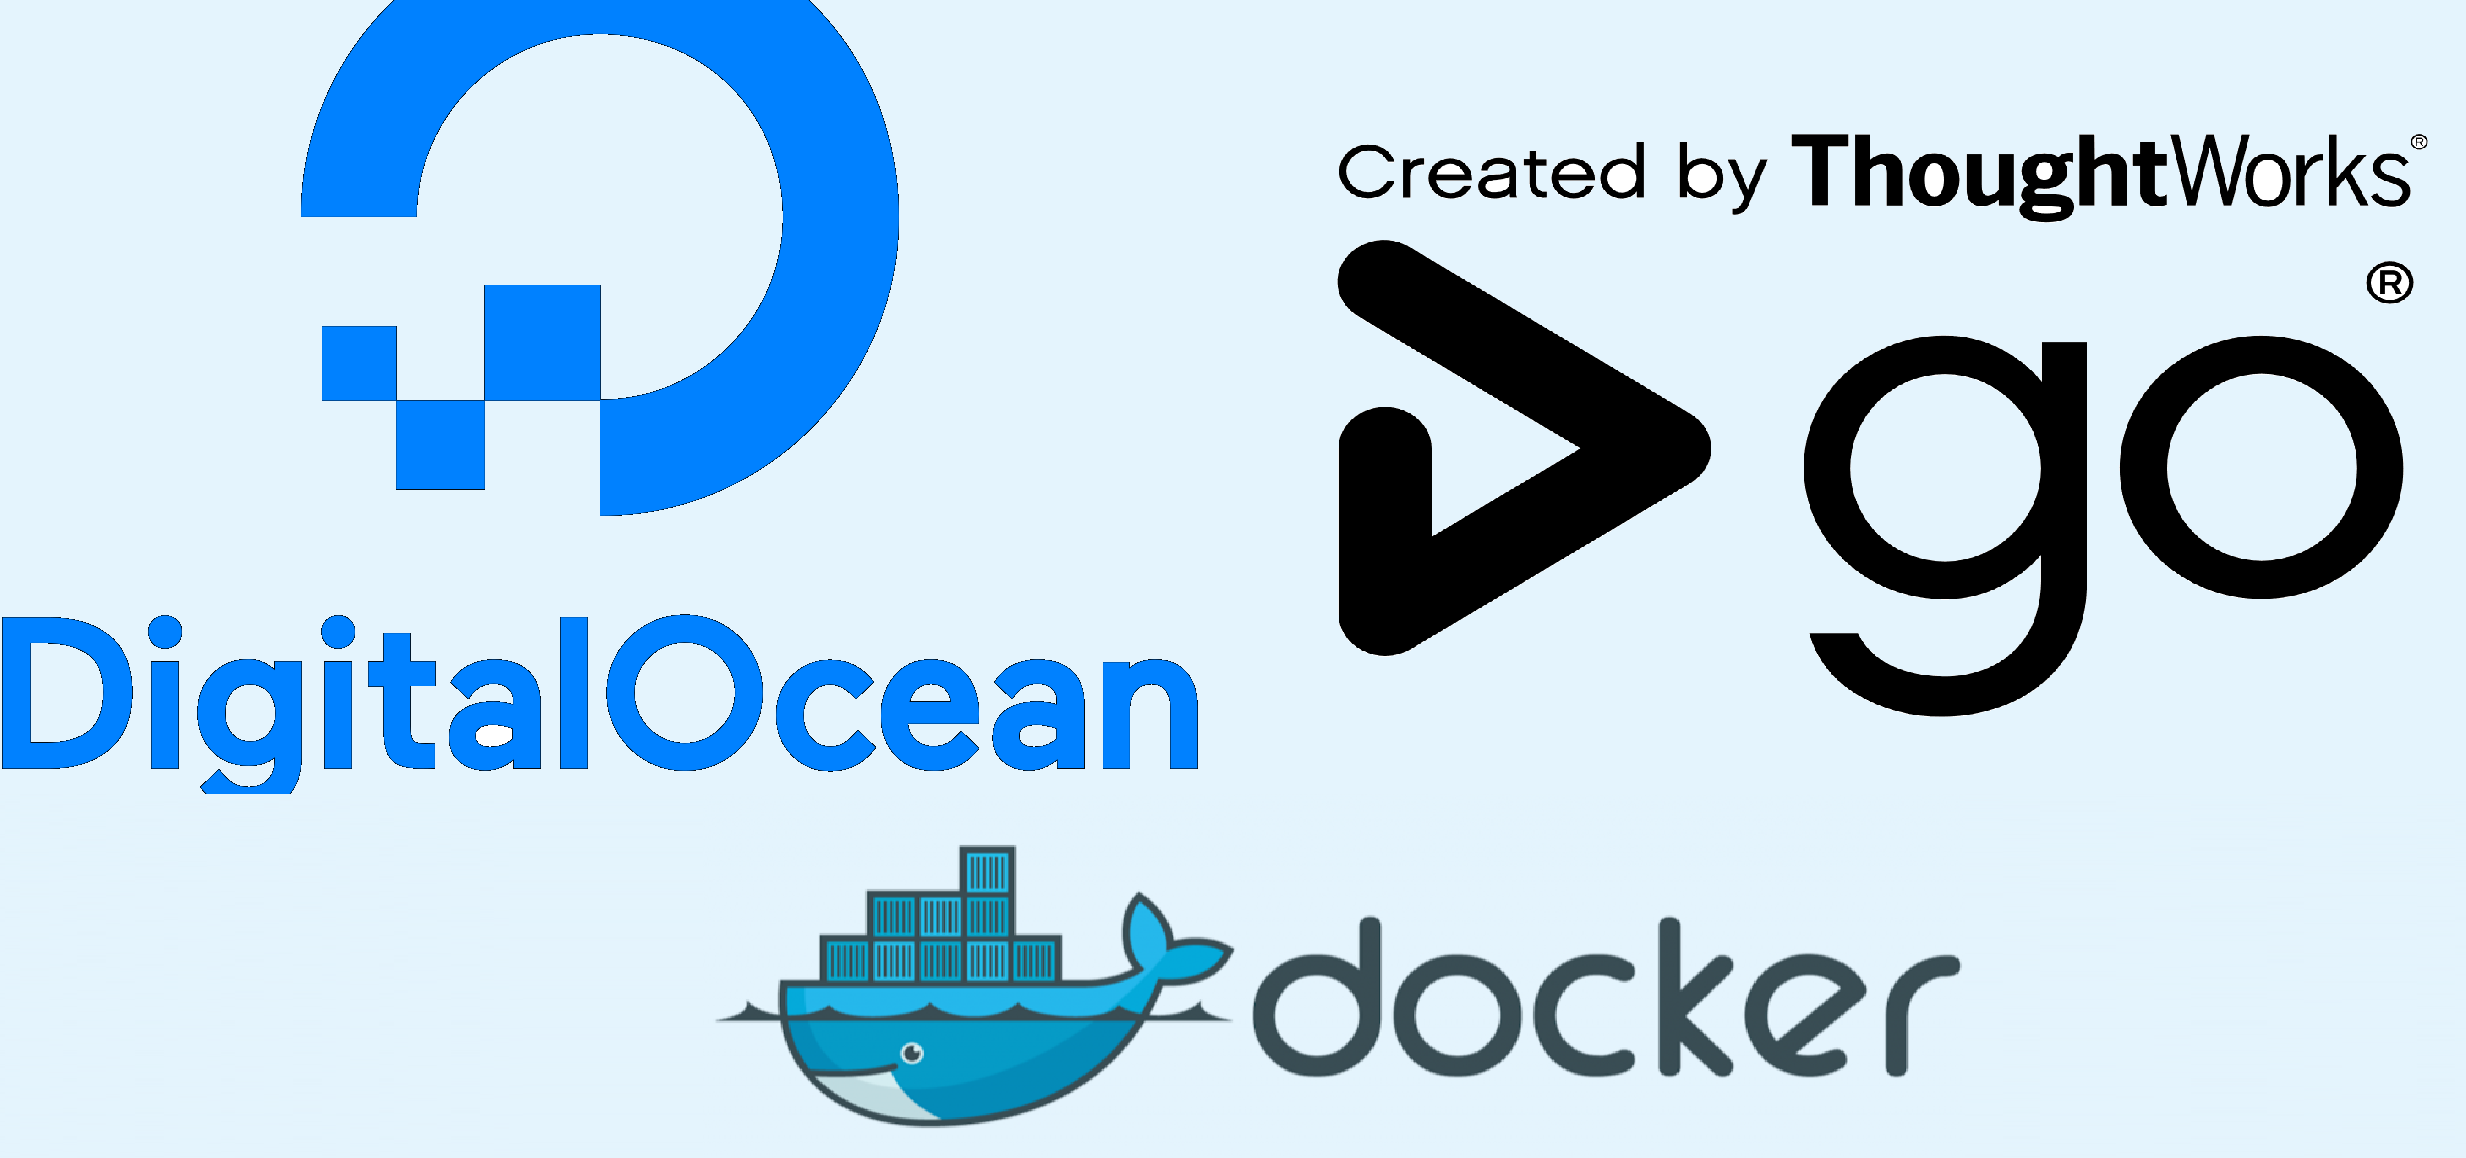 Use GoCD to deploy a single Docker image to DigitalOcean